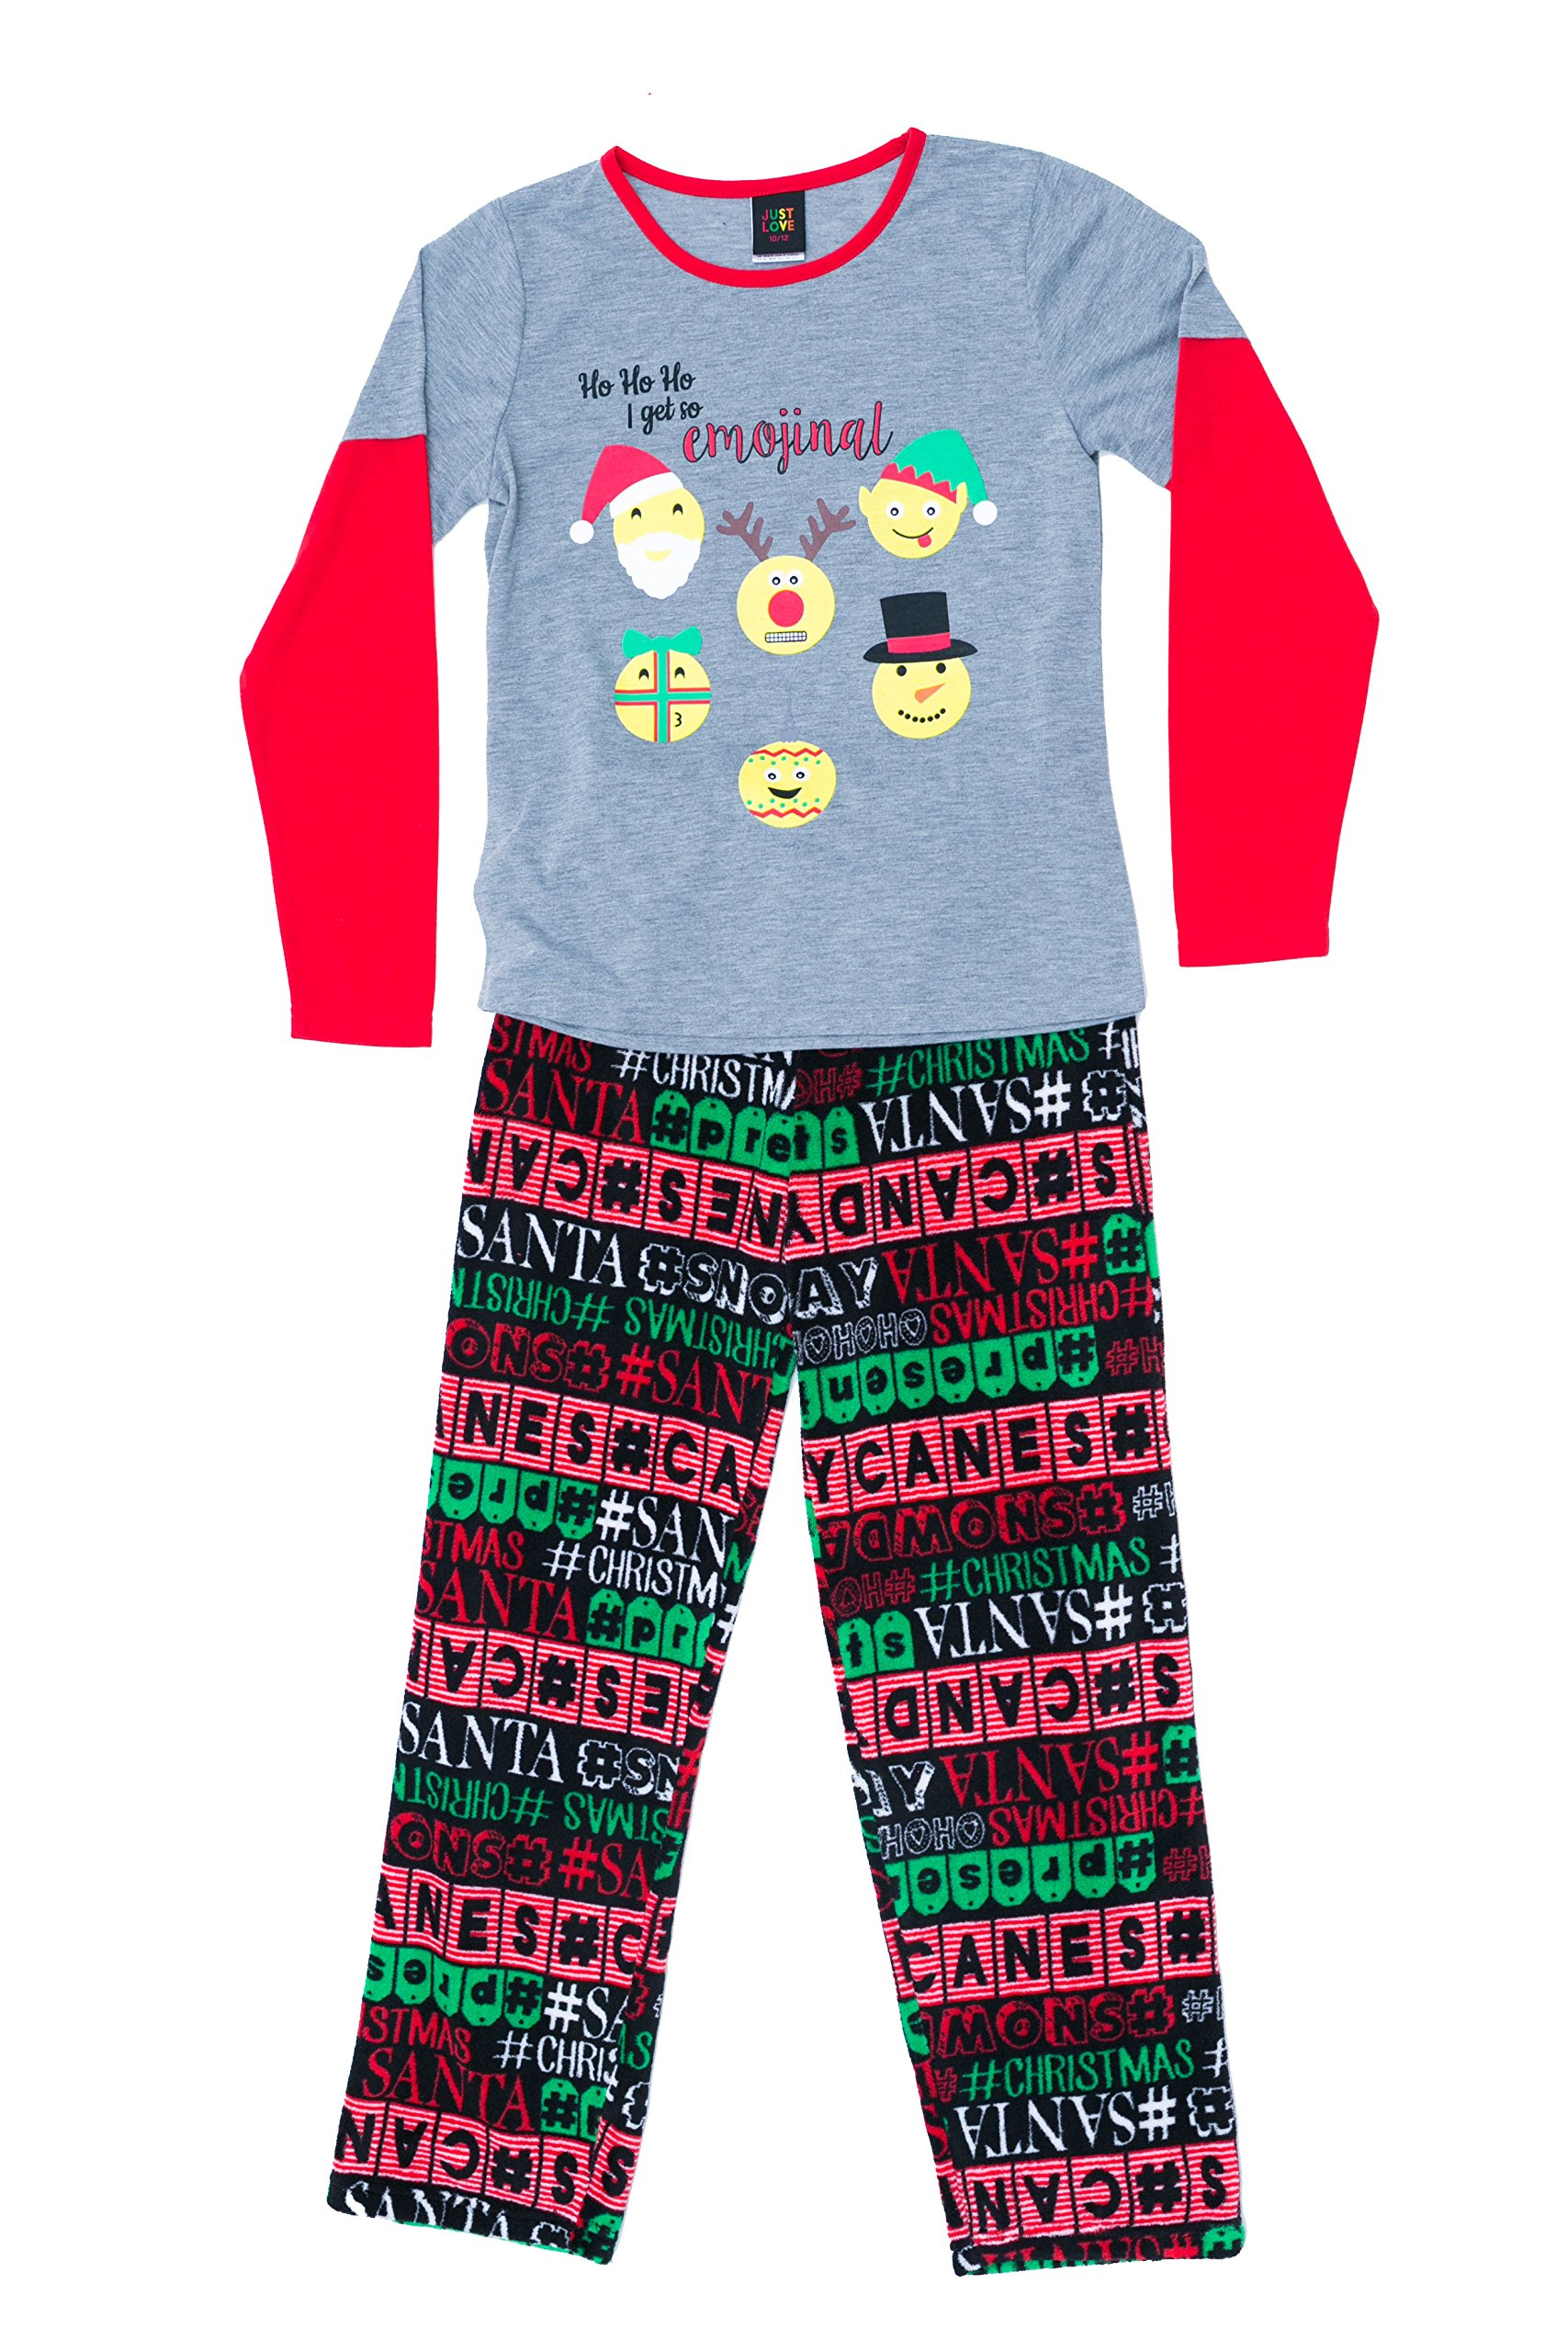 Just Love Holiday Two Piece Girls Pajamas Set for Christmas, Emojinal Words, 14-16